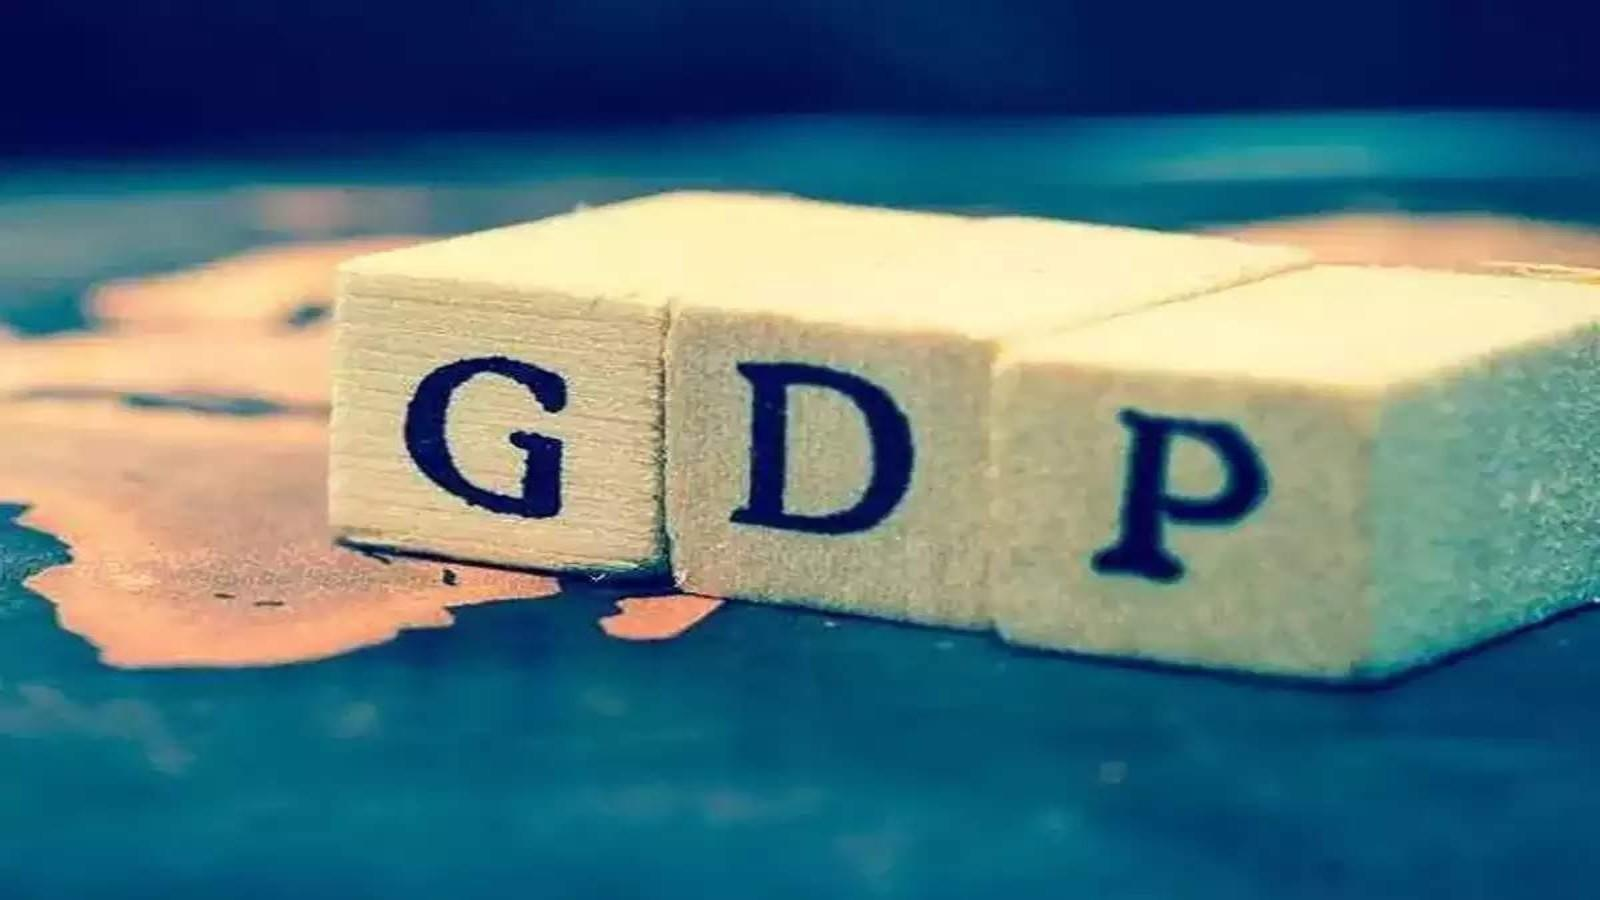 indian-economy-estimated-to-contract-7-7-in-2020-21-as-per-government-data